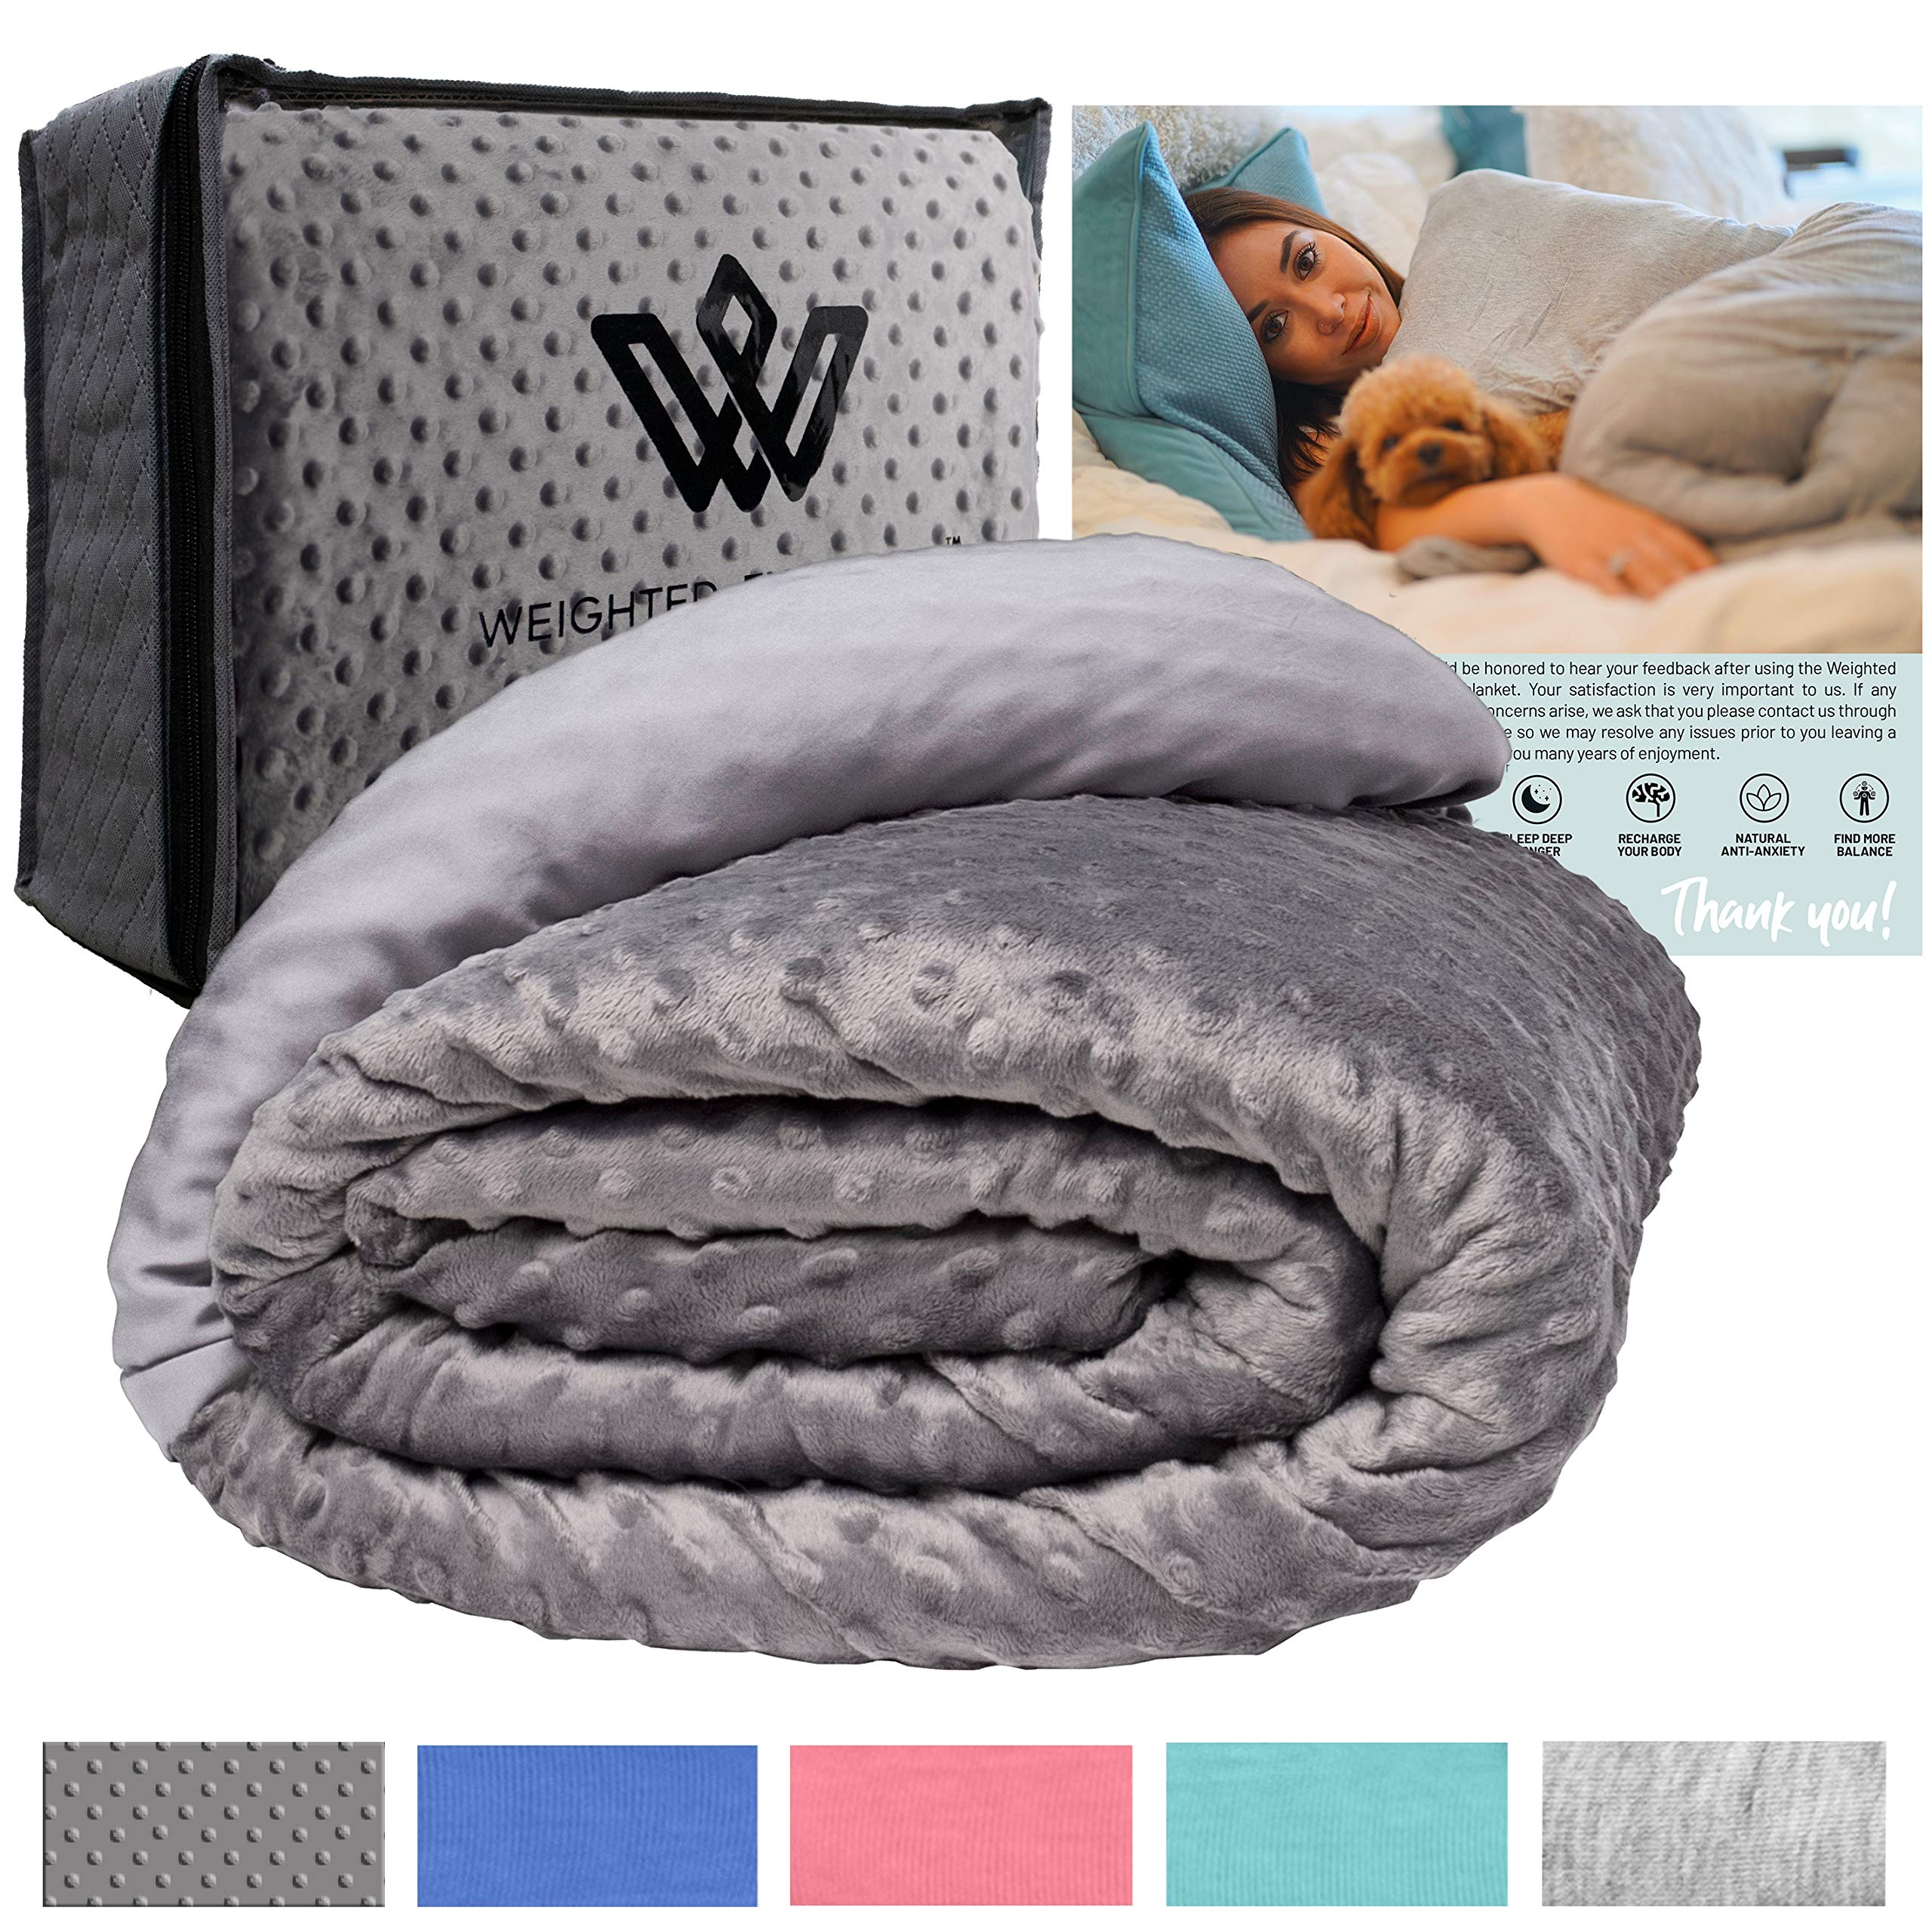 """Weighted Evolution Weighted Blanket+Bonus Organic Bamboo Lyocell/Sensory Dot Cover Best Blanket for Adults/Kids-Hypoallergenic Warm Cooling Calm Cozy Heavy Blanket (Minky/Bamboo, 48""""x72"""" 12 lbs)"""